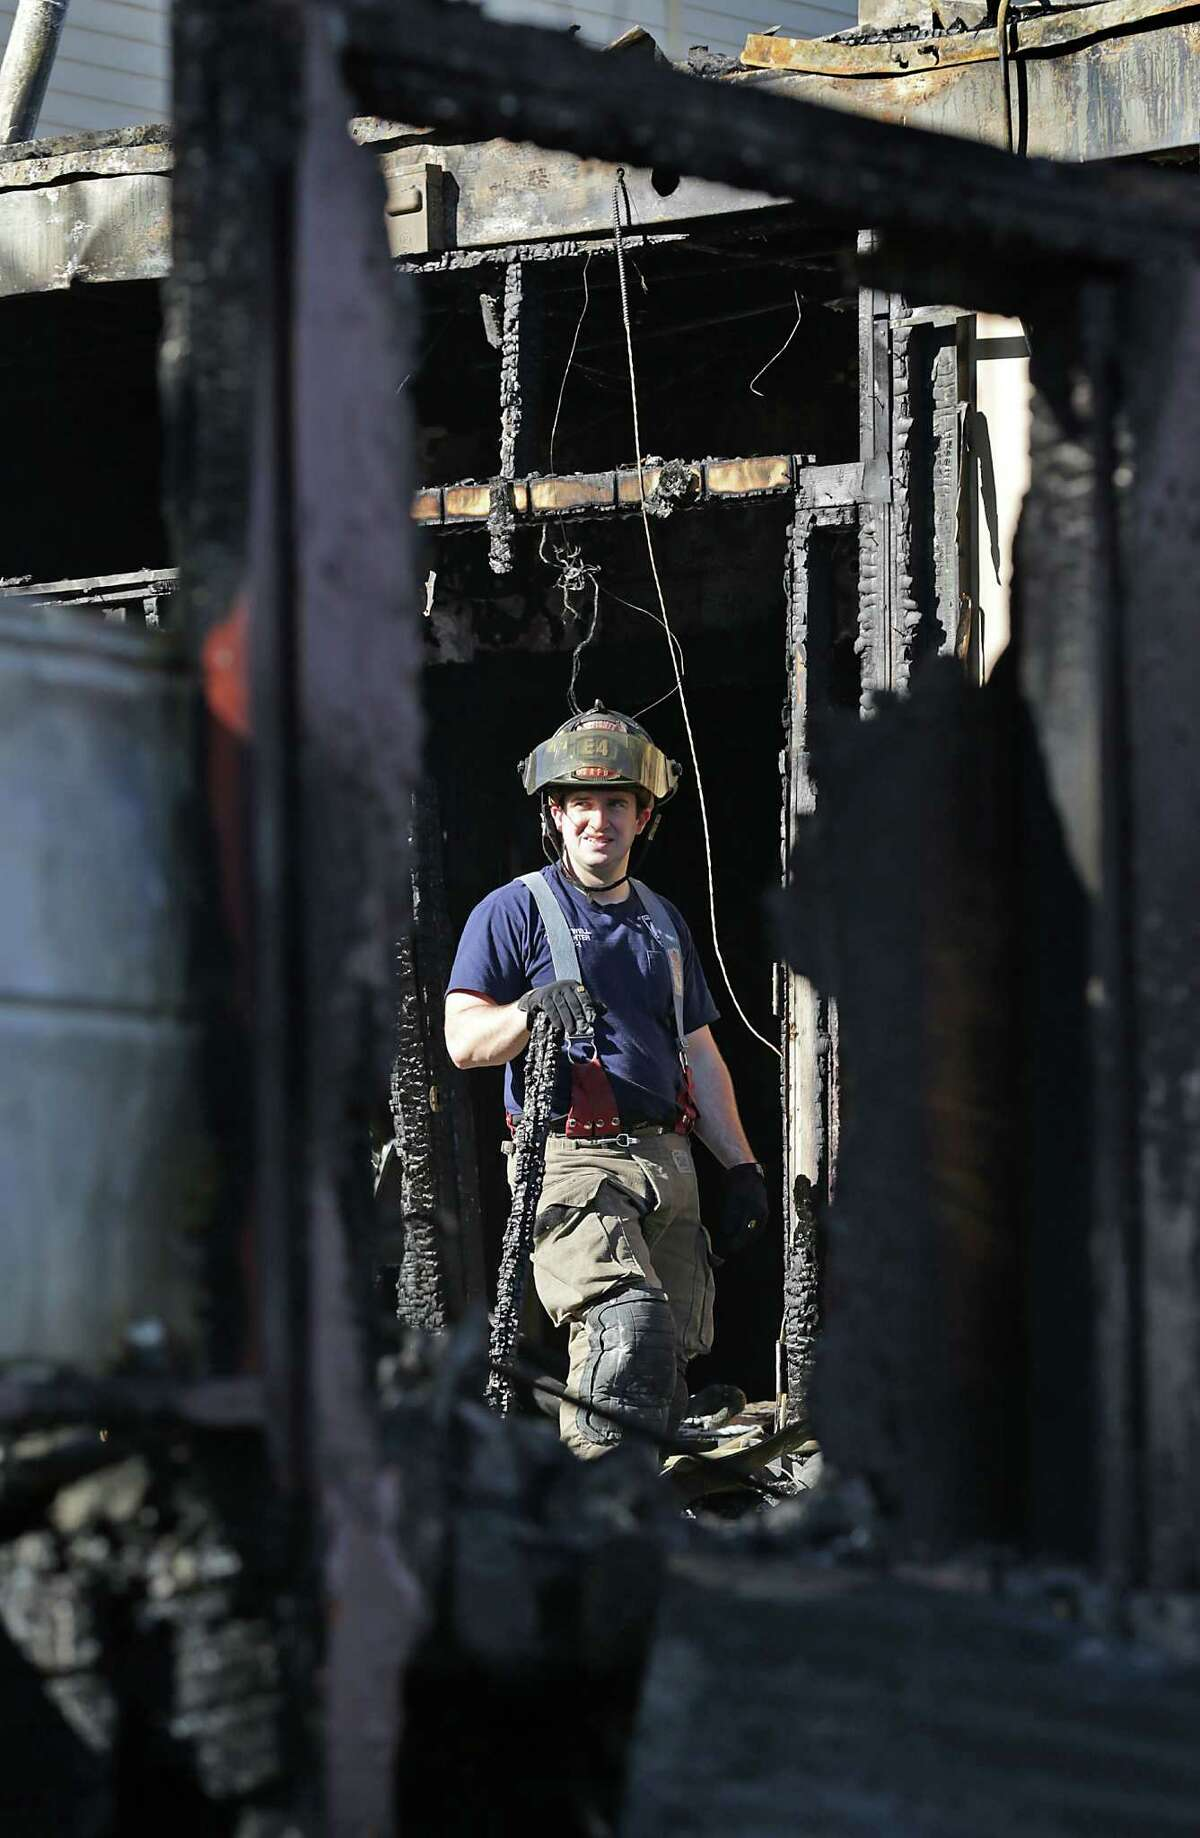 A San Antonio fire fighter looks over the damage after fire broke out early Wednesday morning, Nov. 16, 2016, at The Phantom Room on N. St. Mary's St.